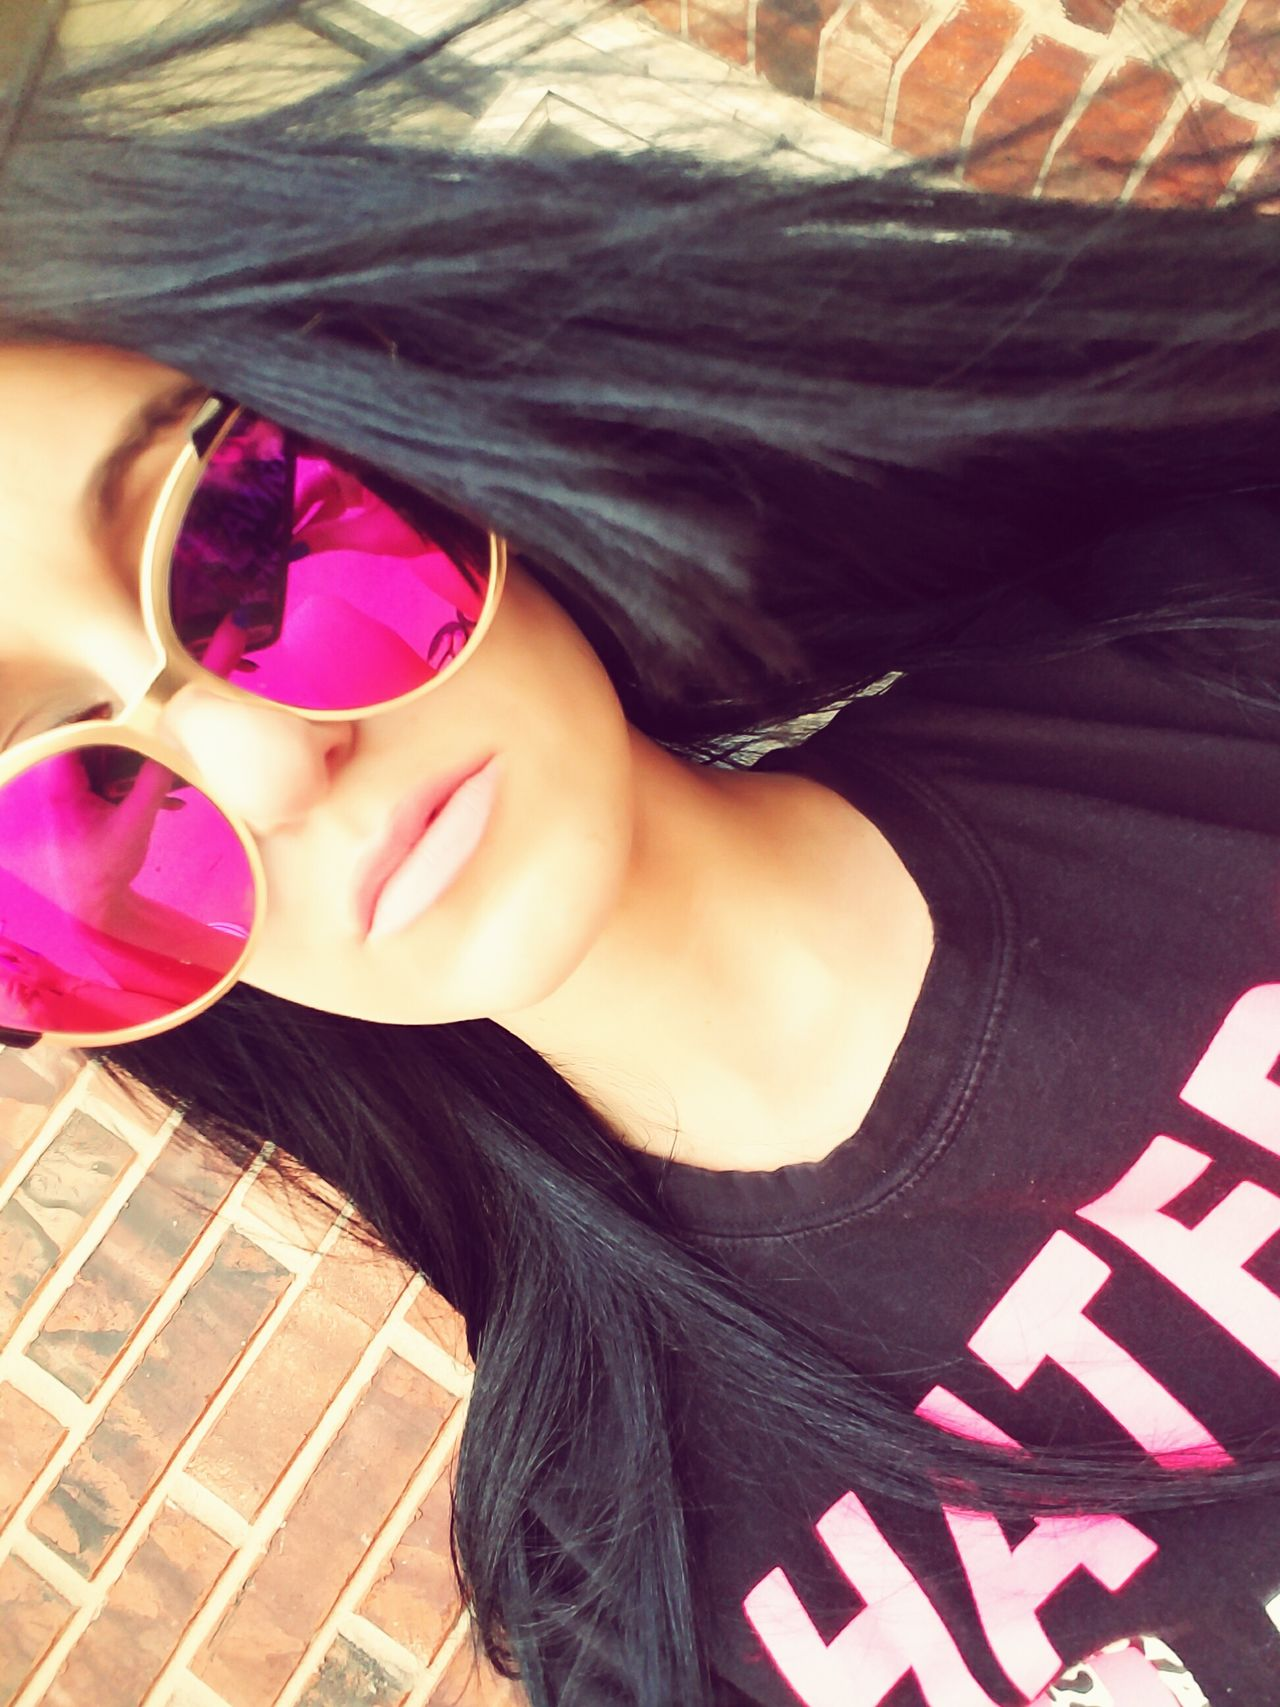 Art Is Everywhere Sunglasses Selfienation LoveYourself Phtotography IWILLBEAMODELONEDAY Happiness Sharemyphoto Pink Color One Person Outdoors Love To Take Photos ❤ Kindness Inspiringwords Spring Photography Photography EyeEm Best Shots Eyemphotocontest EyeEm EyeEm Best Shots - People + Portrait EyeEmNewHere EyeEm Diversity Eyeemphotography Growth Eye4photography  2017